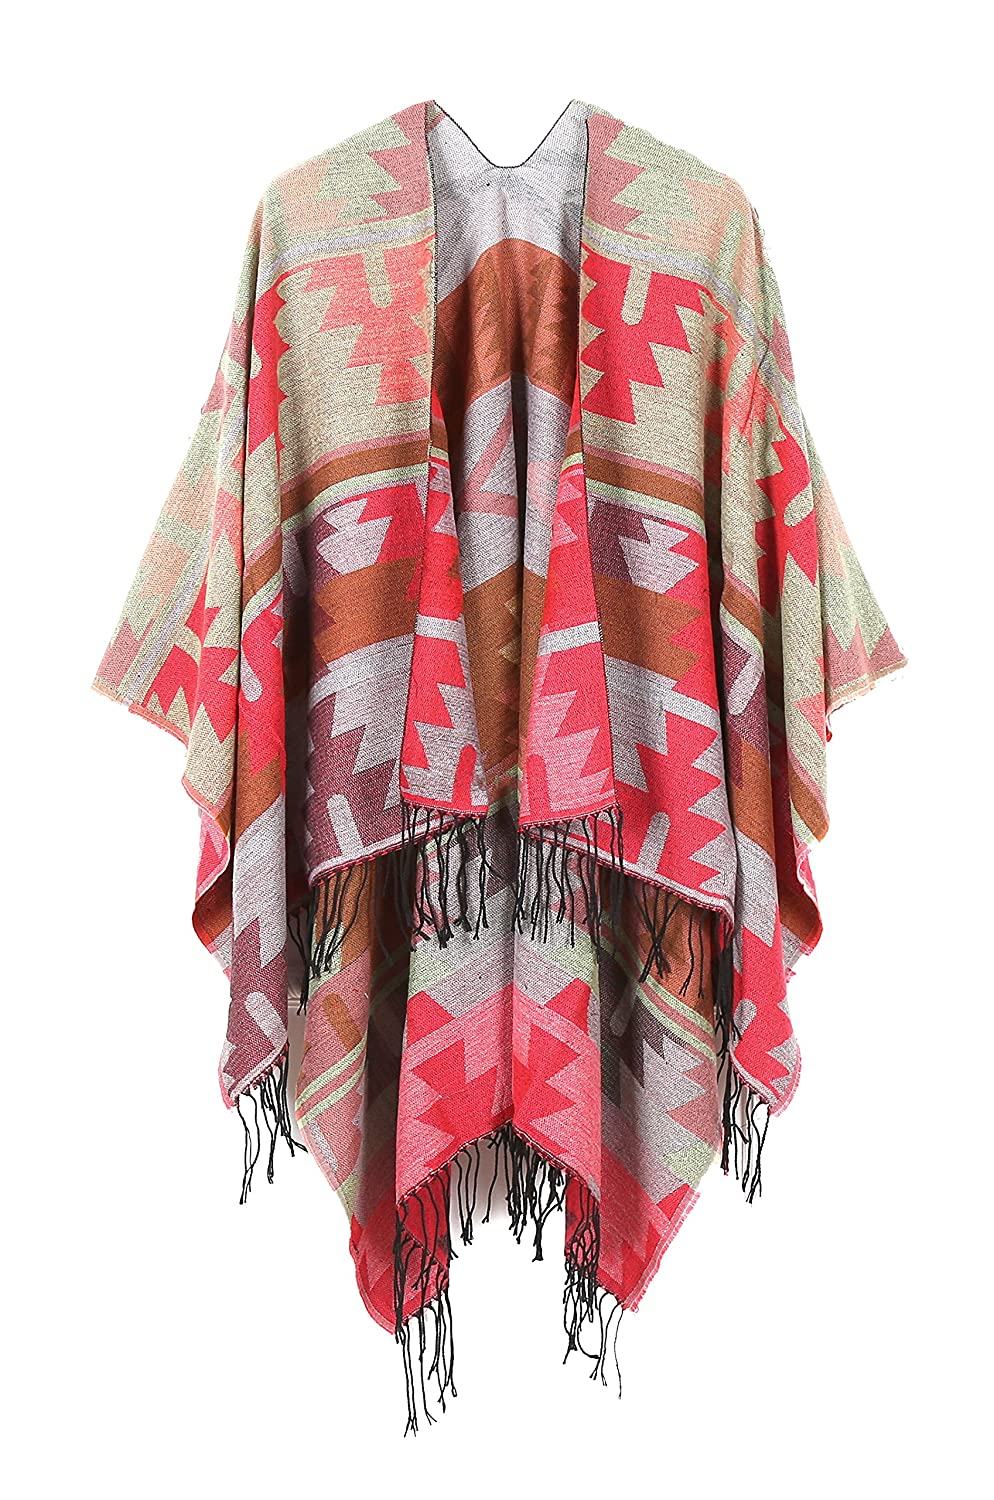 JURUAA Women's Fringed Cashmere Fleece Poncho Shawl Wrap Coat JURUAACA16961067